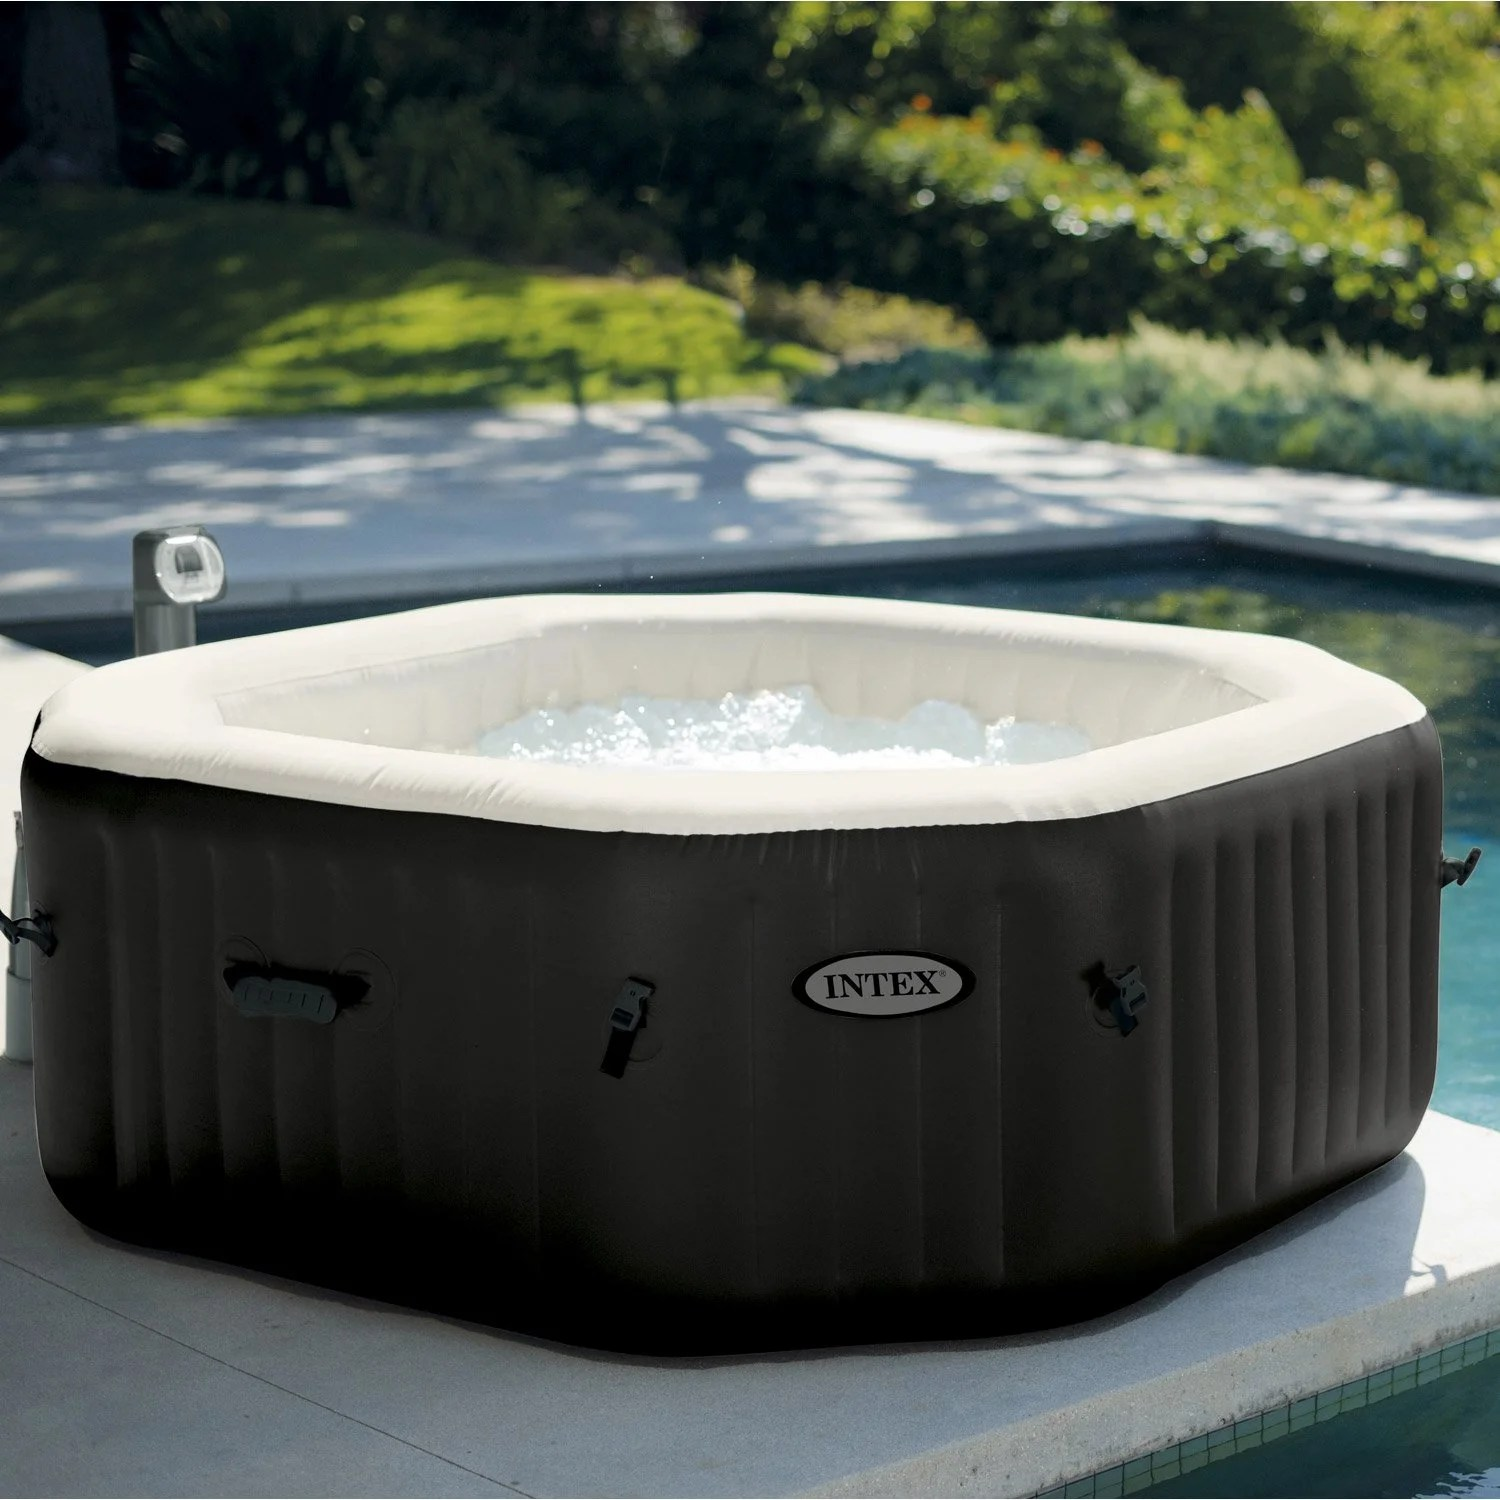 Piscine Spa Gonflable Spa Gonflable Octogonale Intex 4 Places Assises Leroy